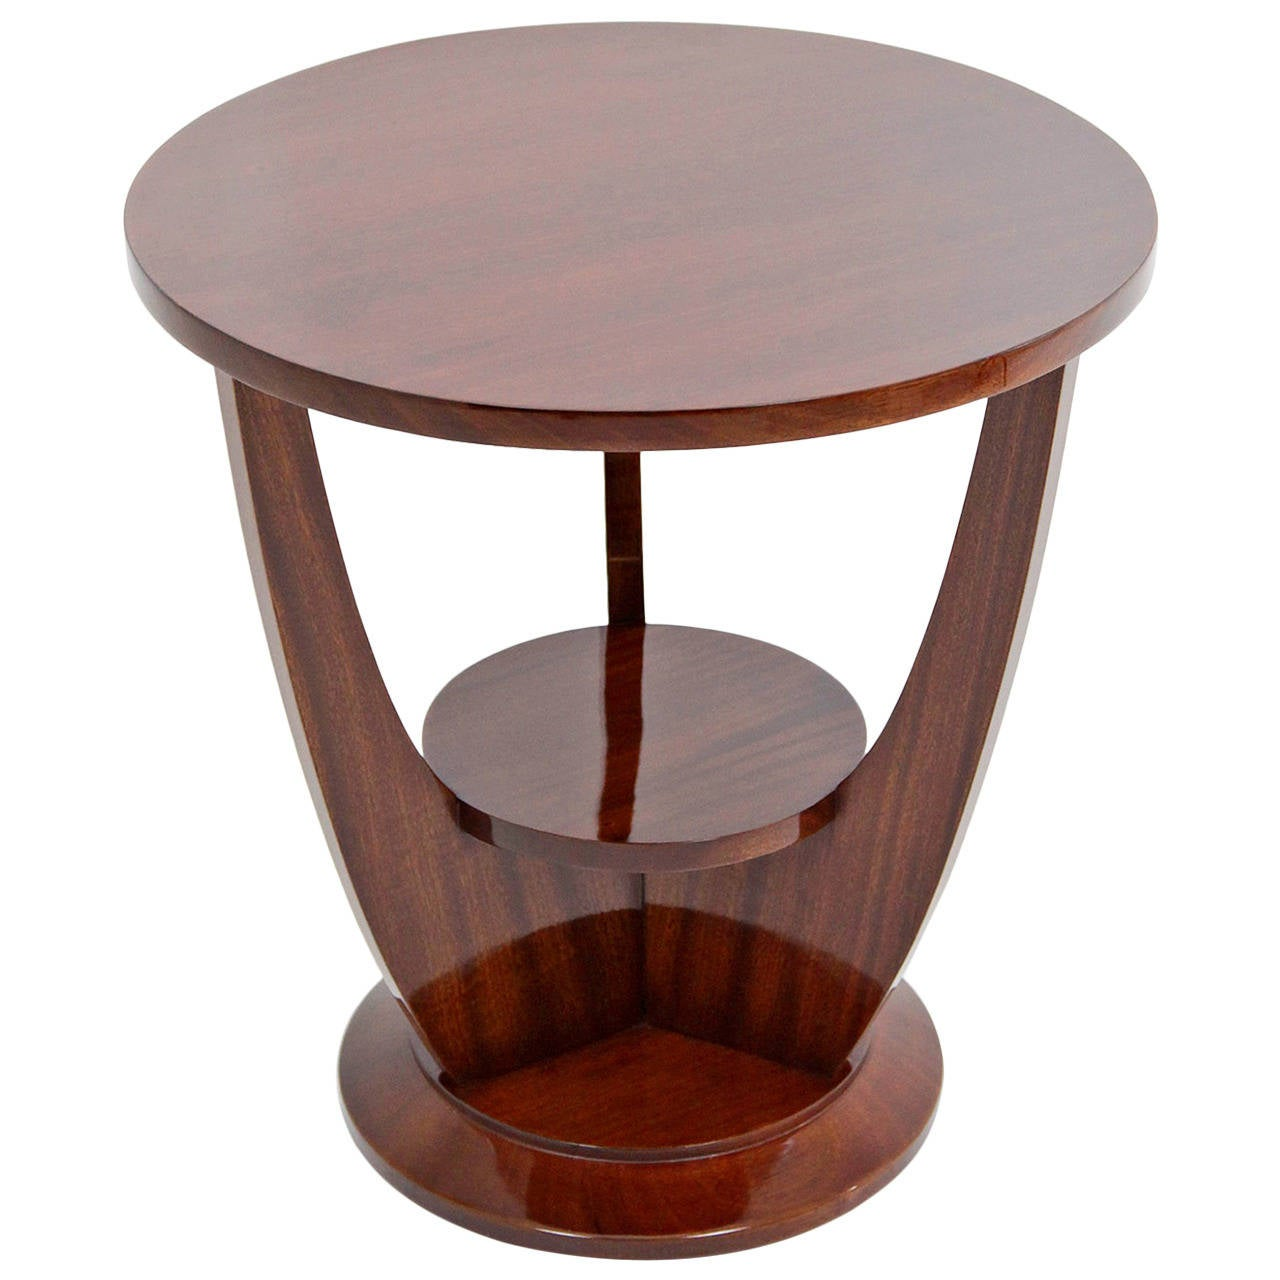 Lovely French Art Deco Side Table, Circa 1920s 1